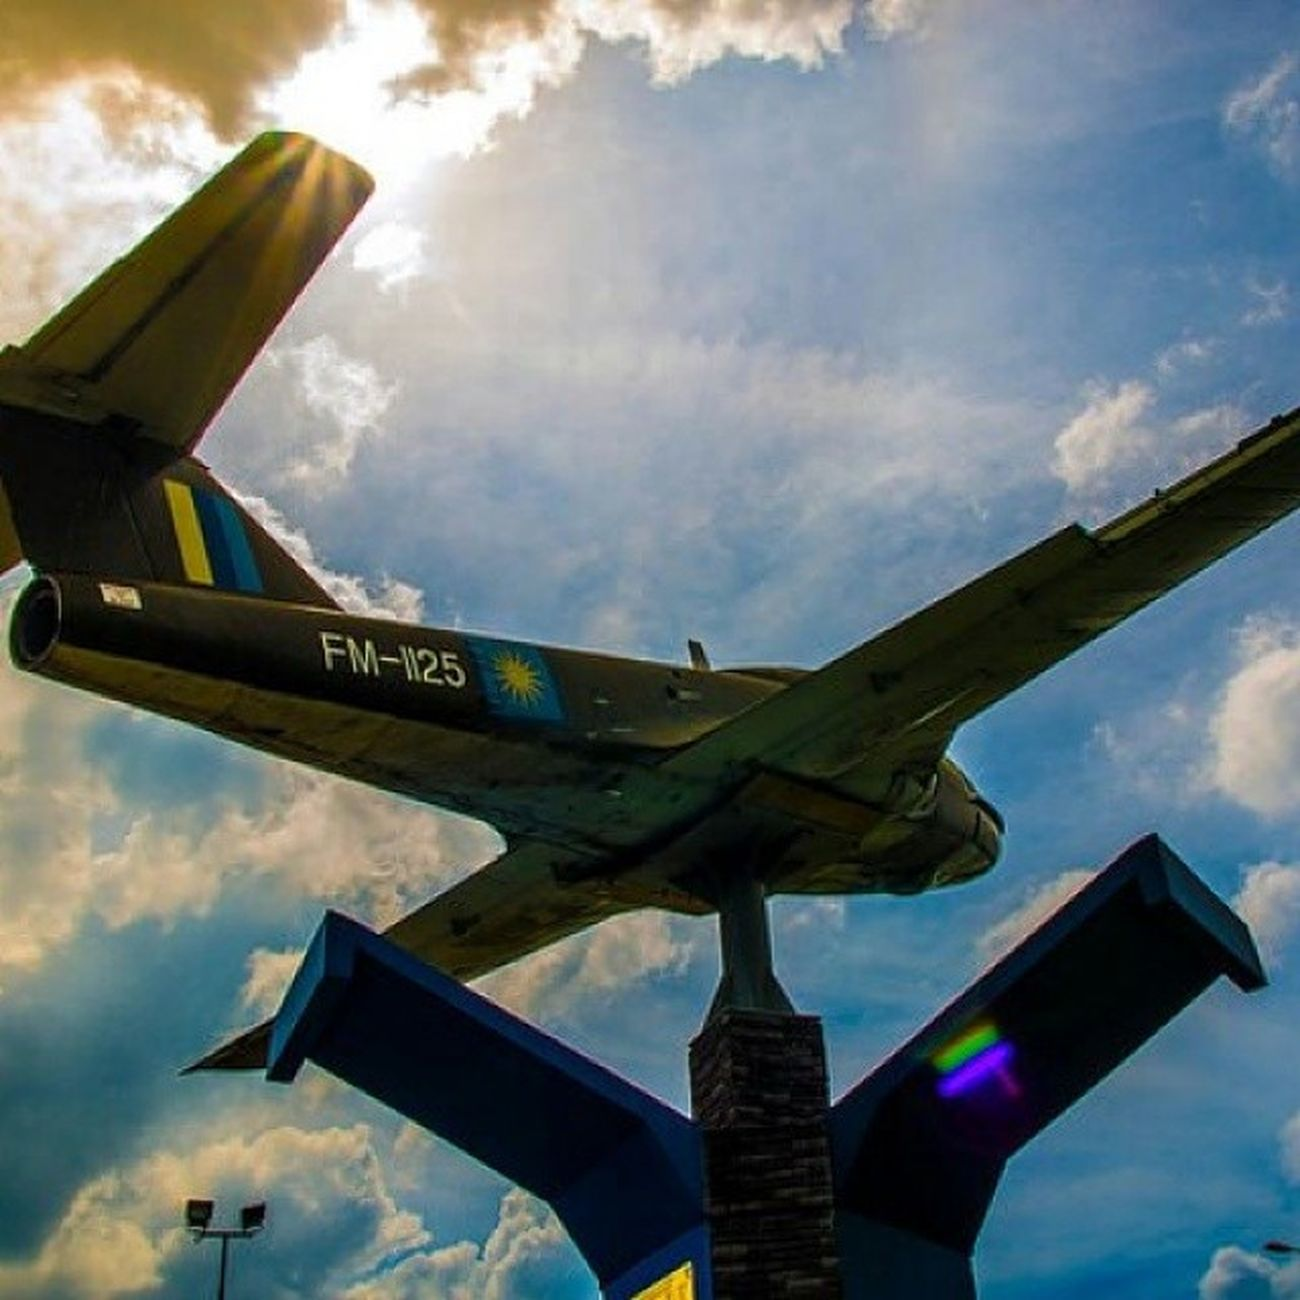 Airforce Monumen Planes Old Aircraft Museum Tudm Skyline Outdoor